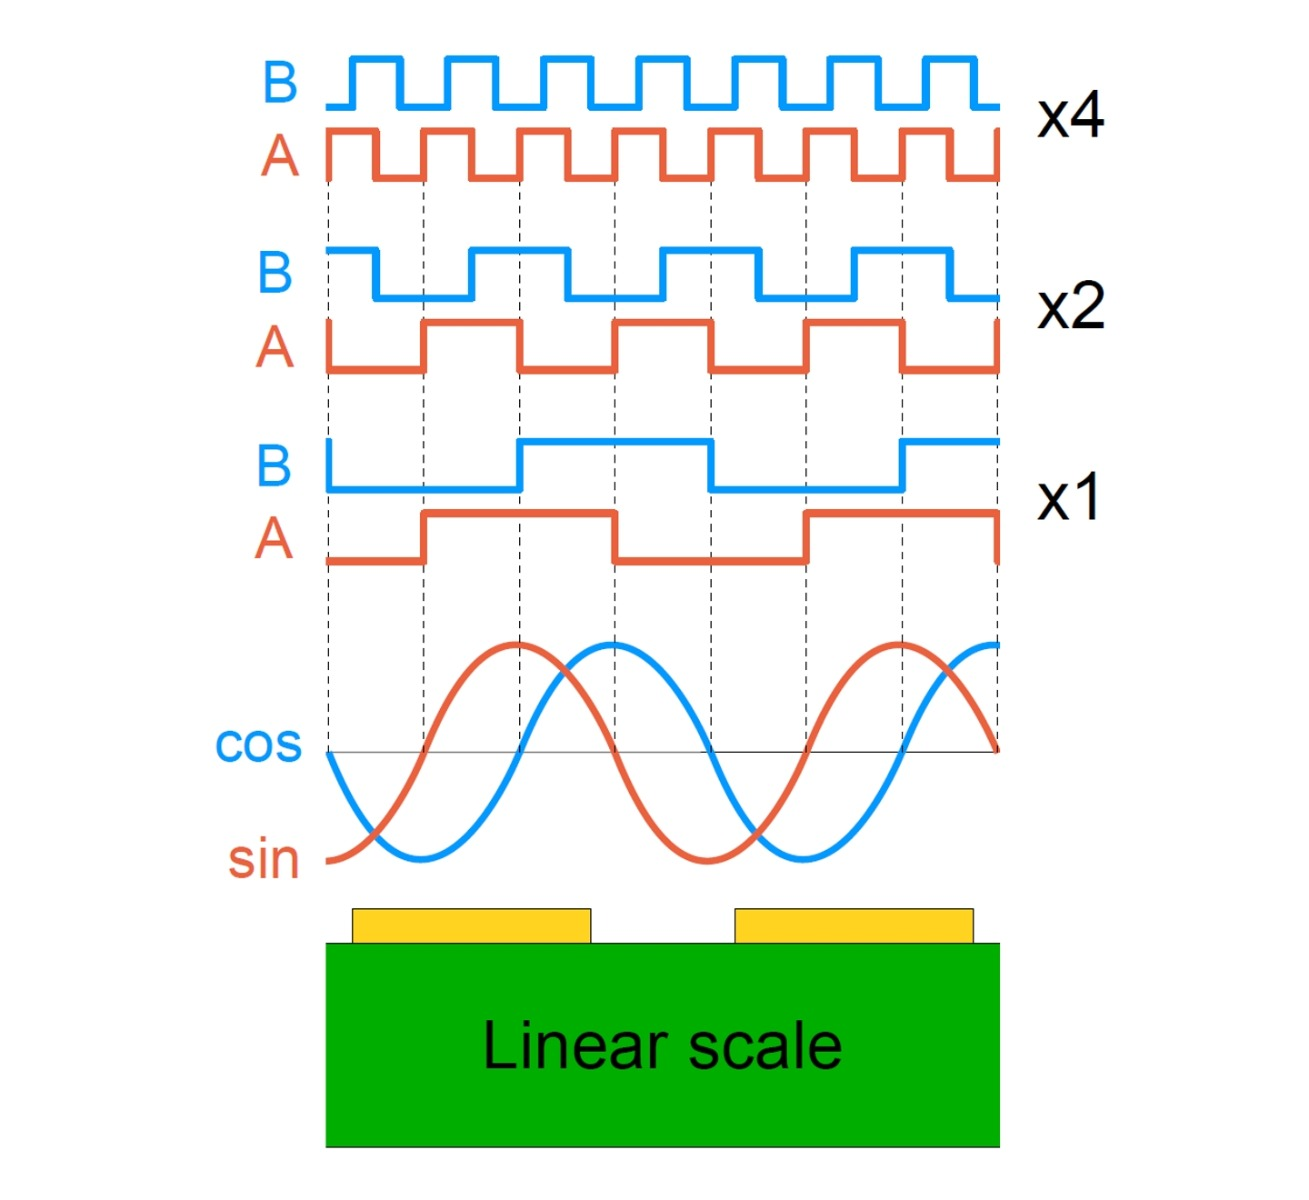 Interpolation of sine and cosine signals